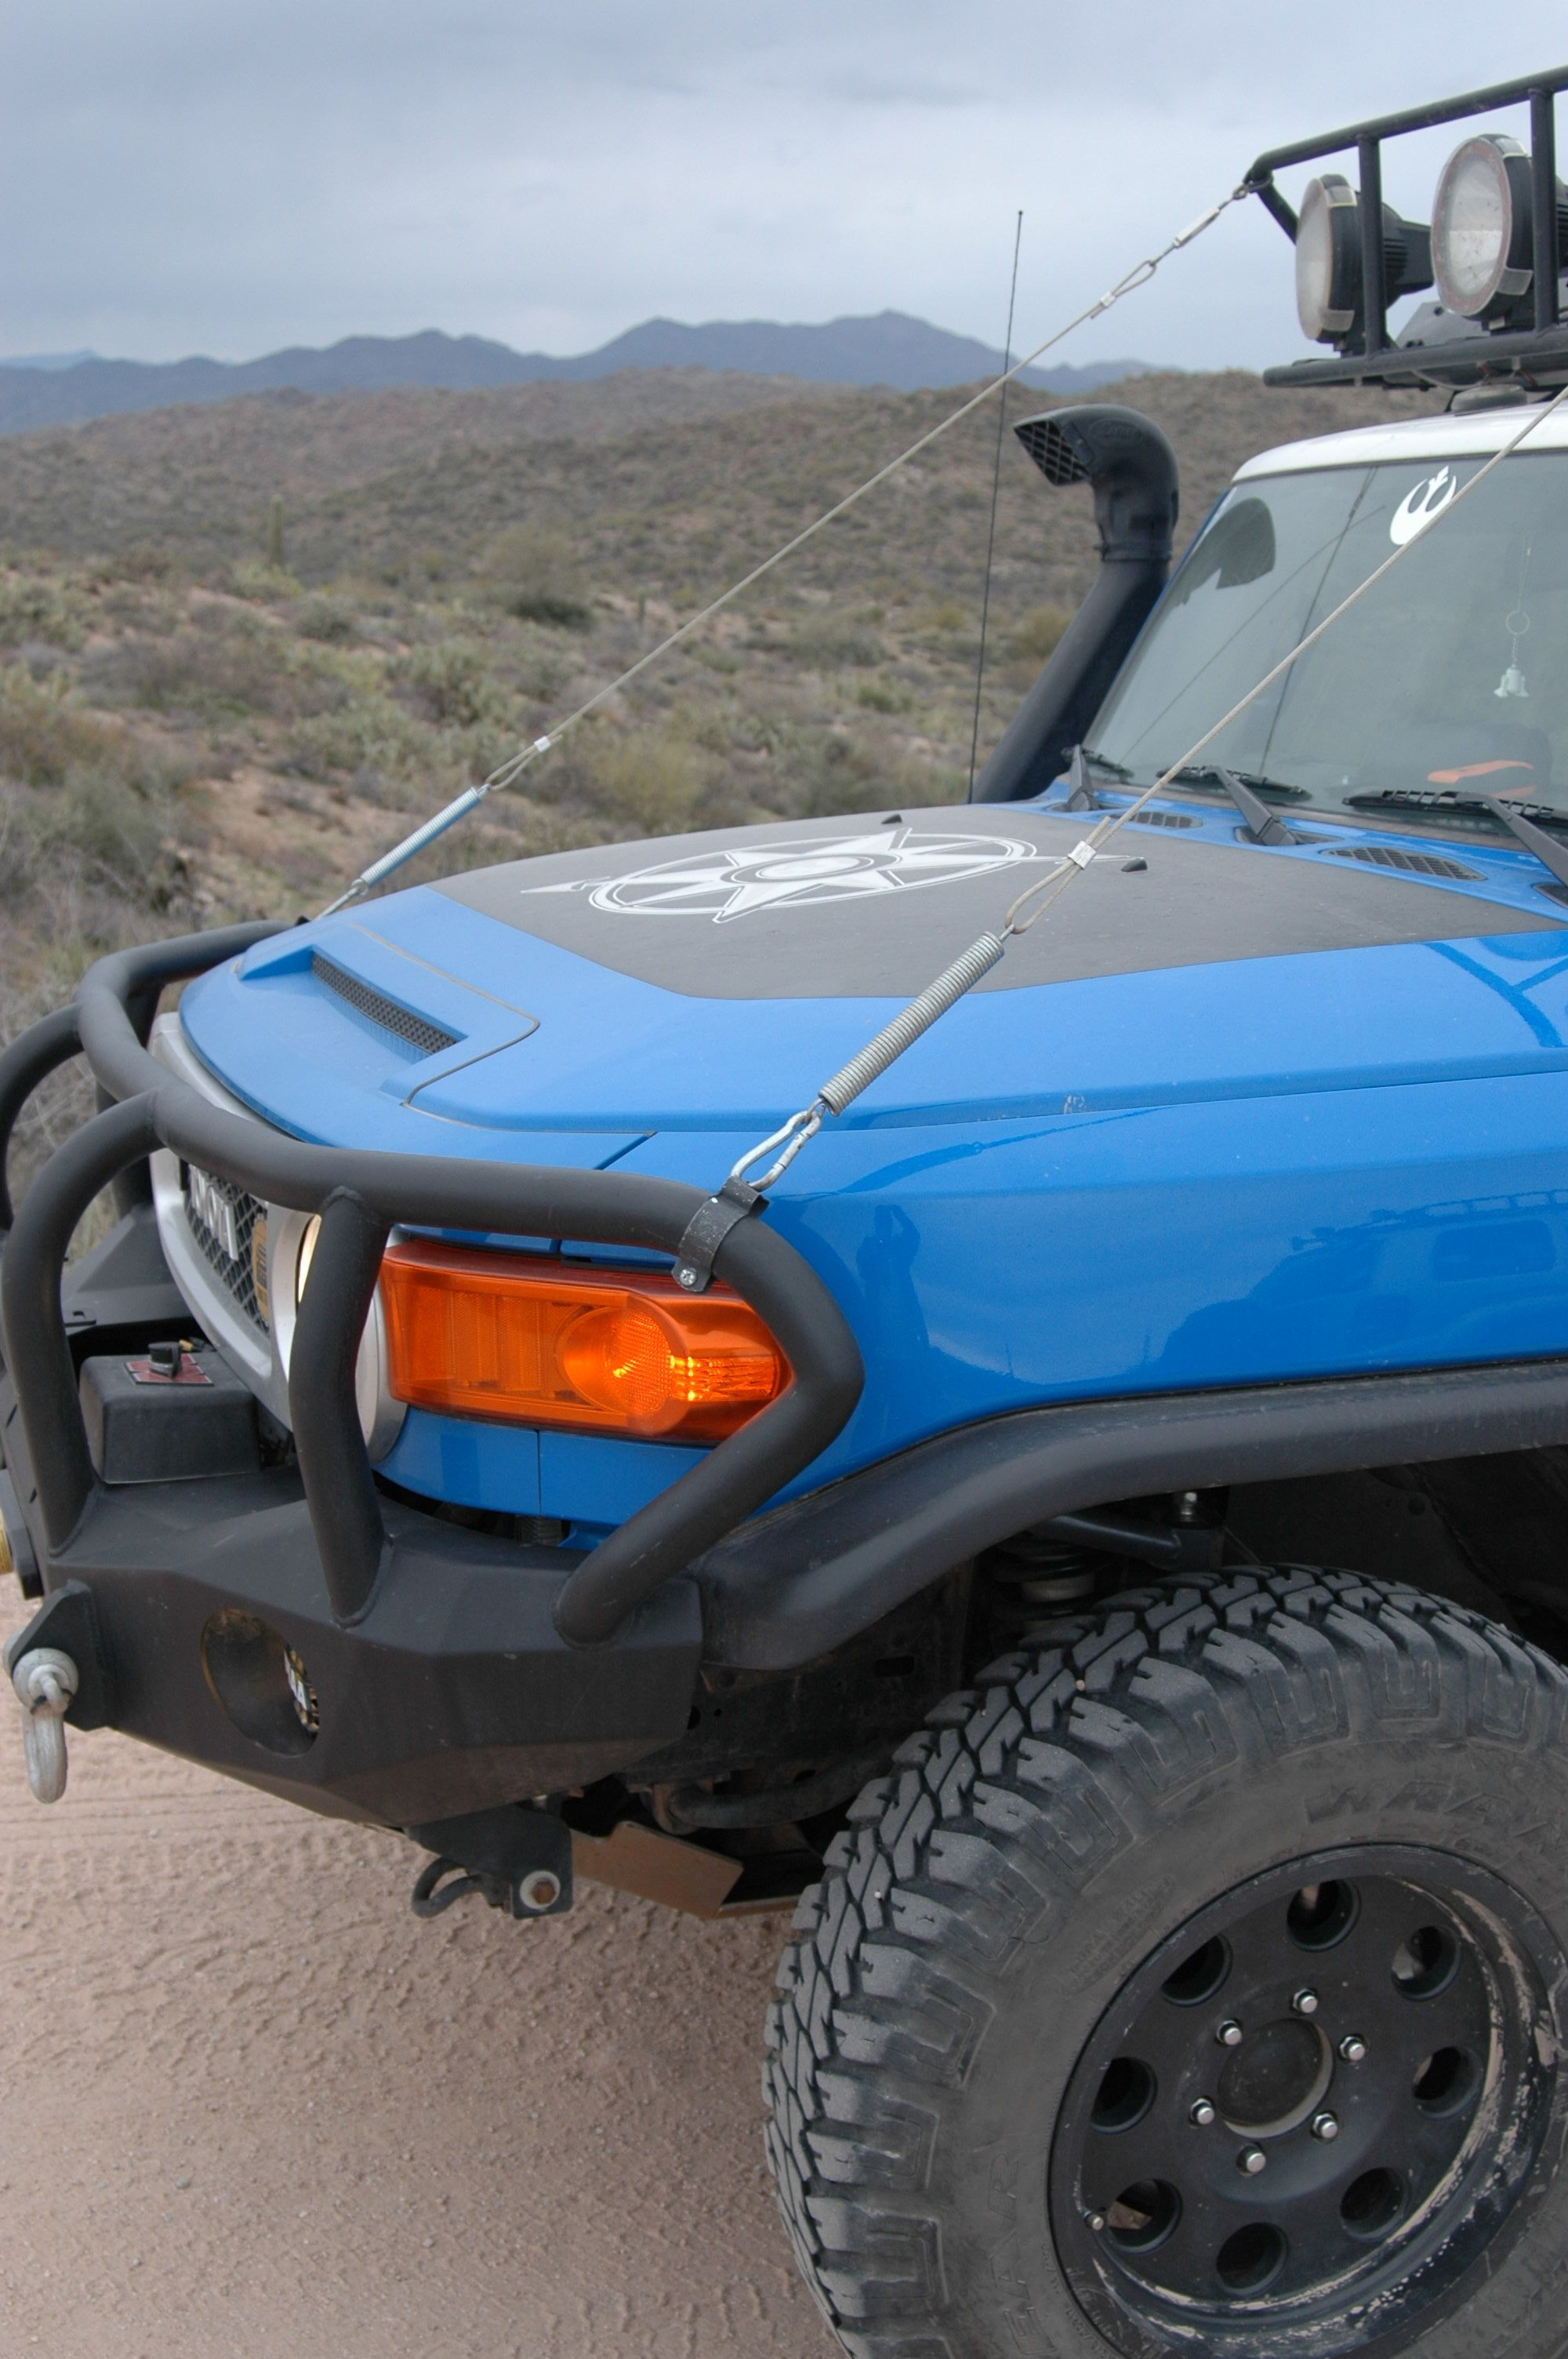 Limb Risers On The Fj Off Road Pinterest Cruiser 4x4 And Lengthening Car Trailer Page 2 Pirate4x4com Offroad Land Toyota